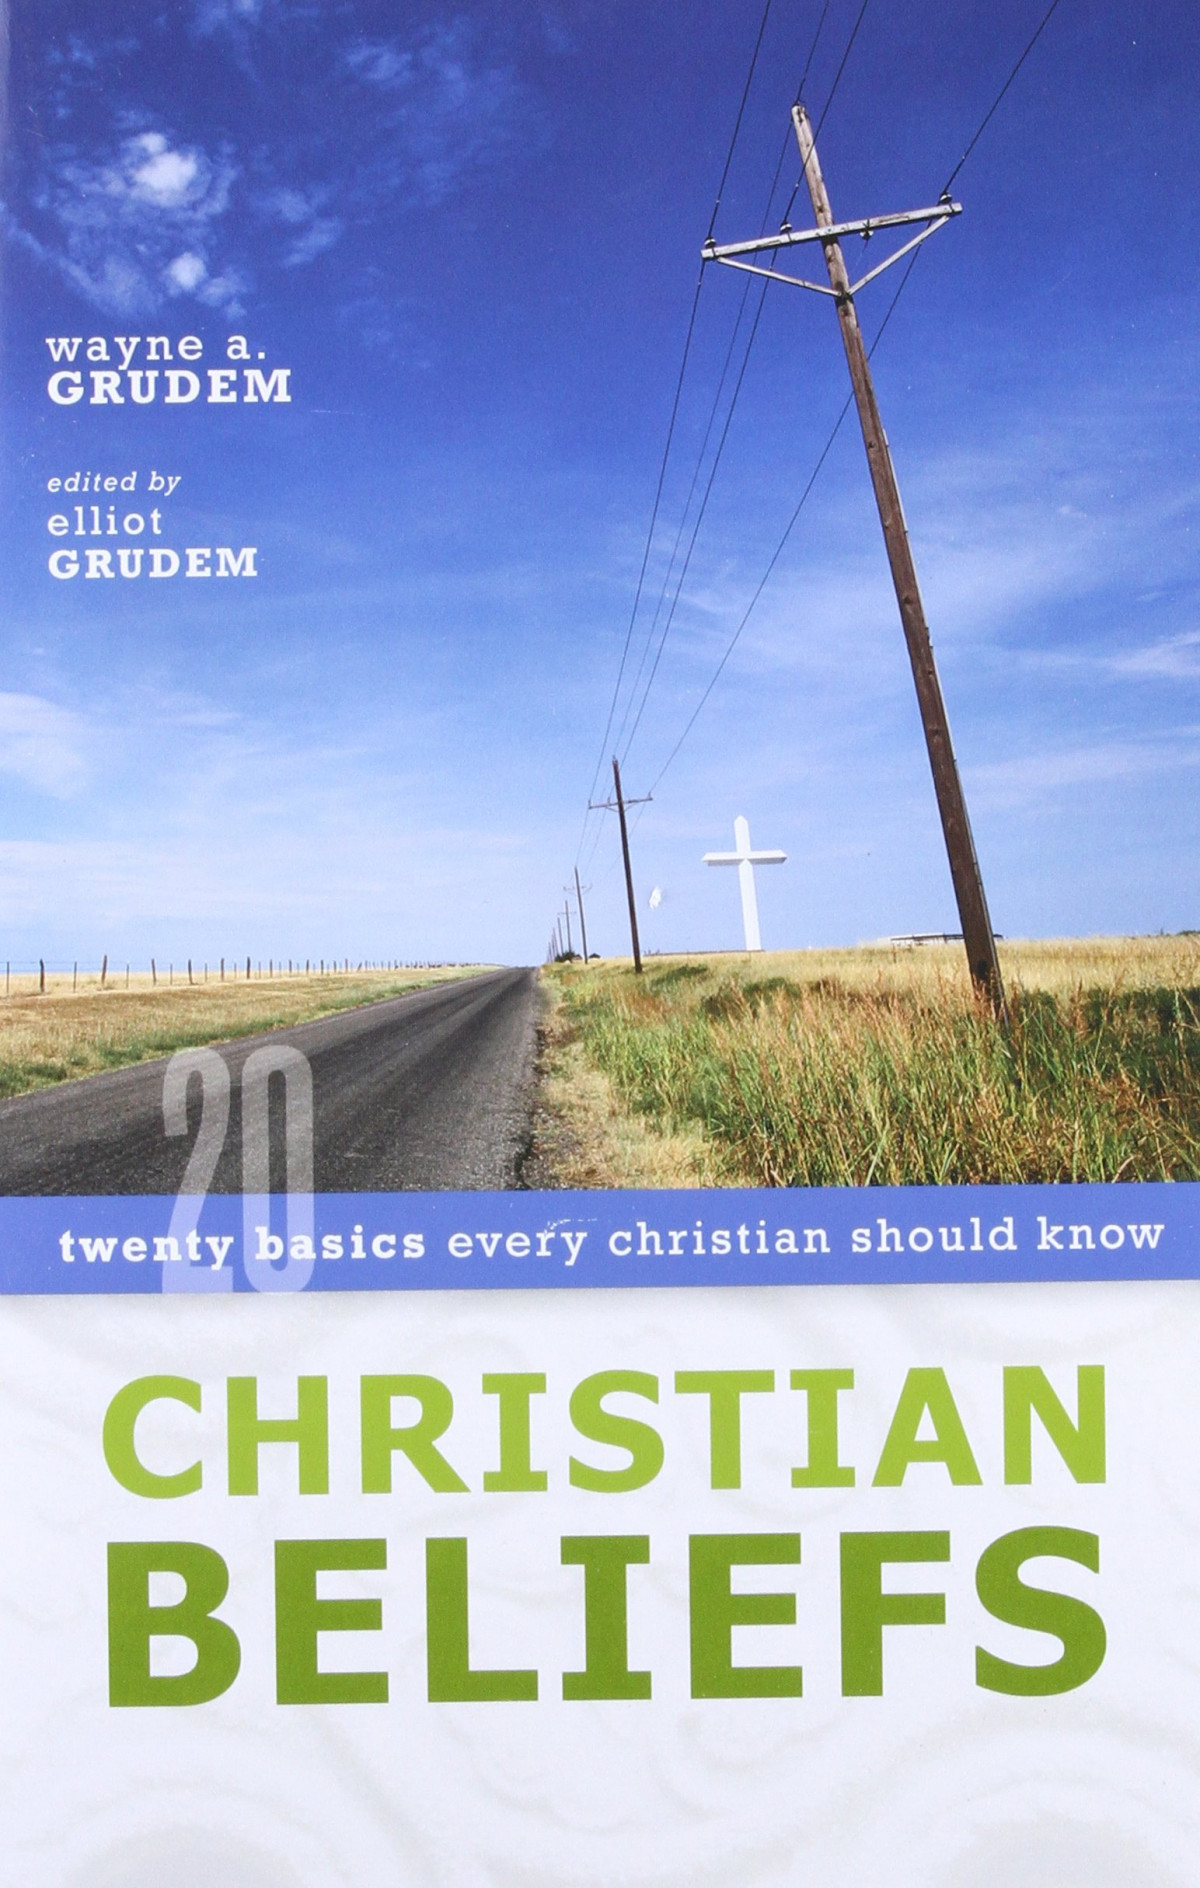 20 Basics Every Christian Should Know